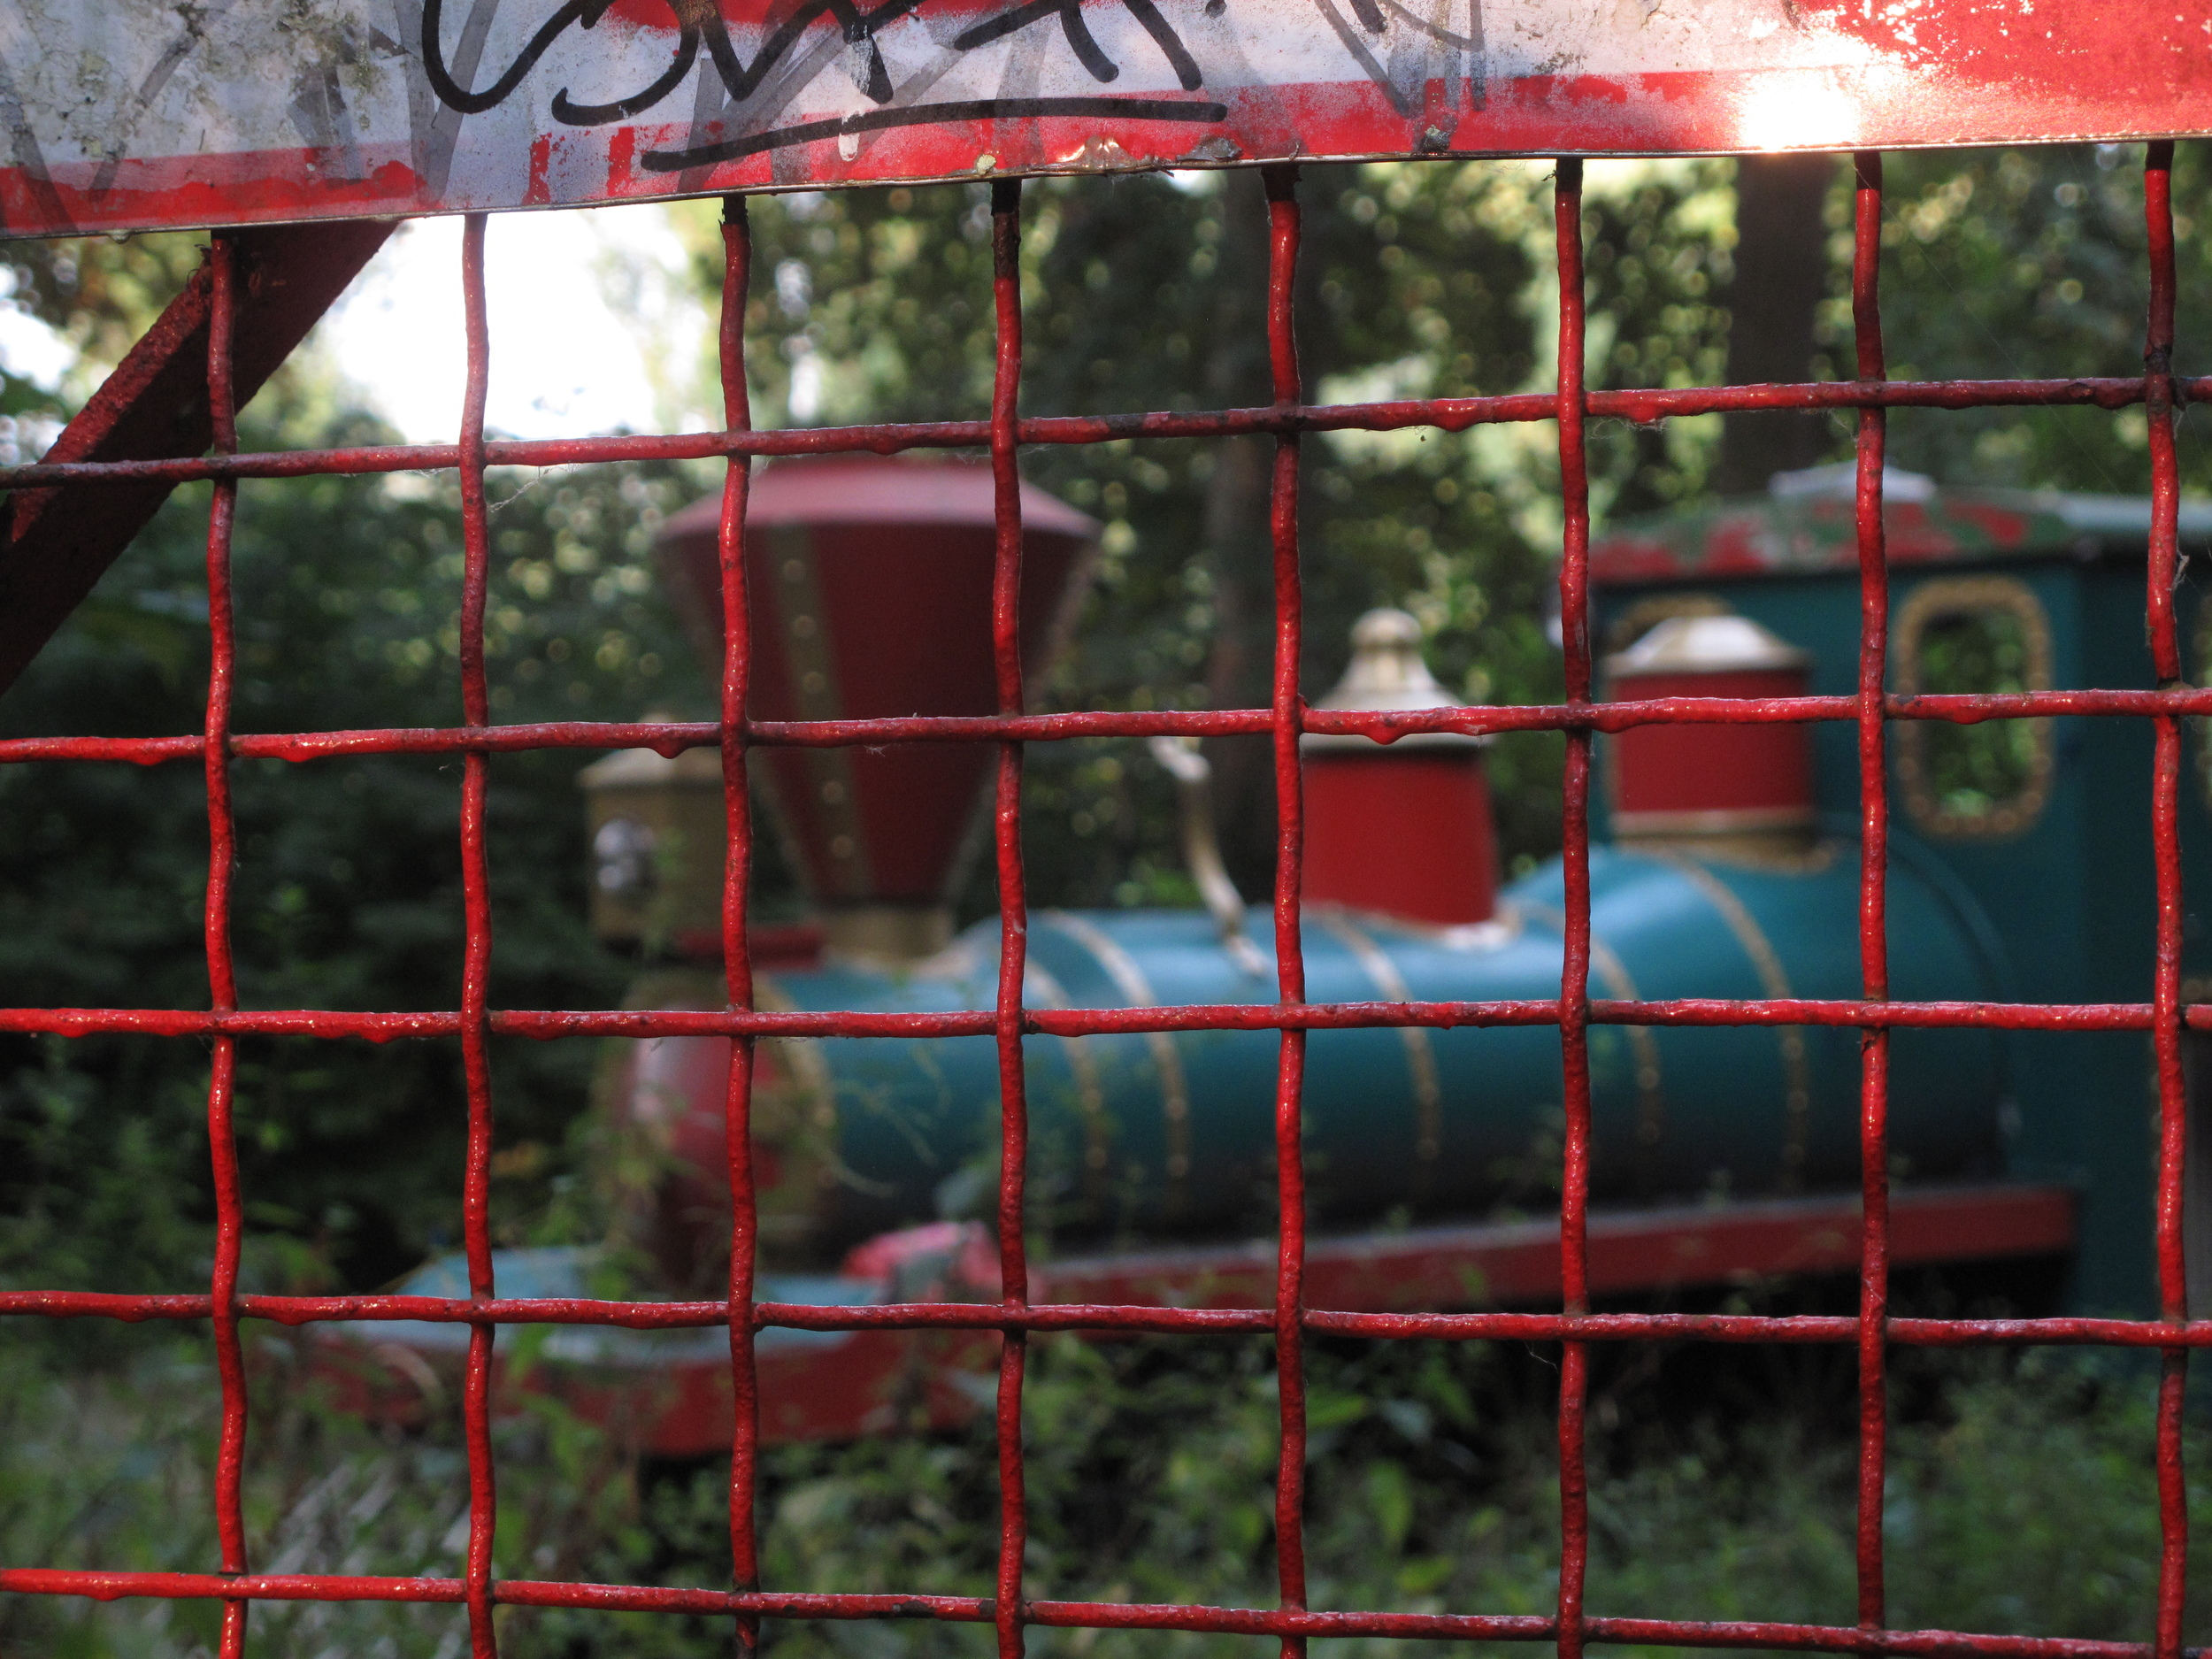 Old red and green train in Spree Park behind the fence.